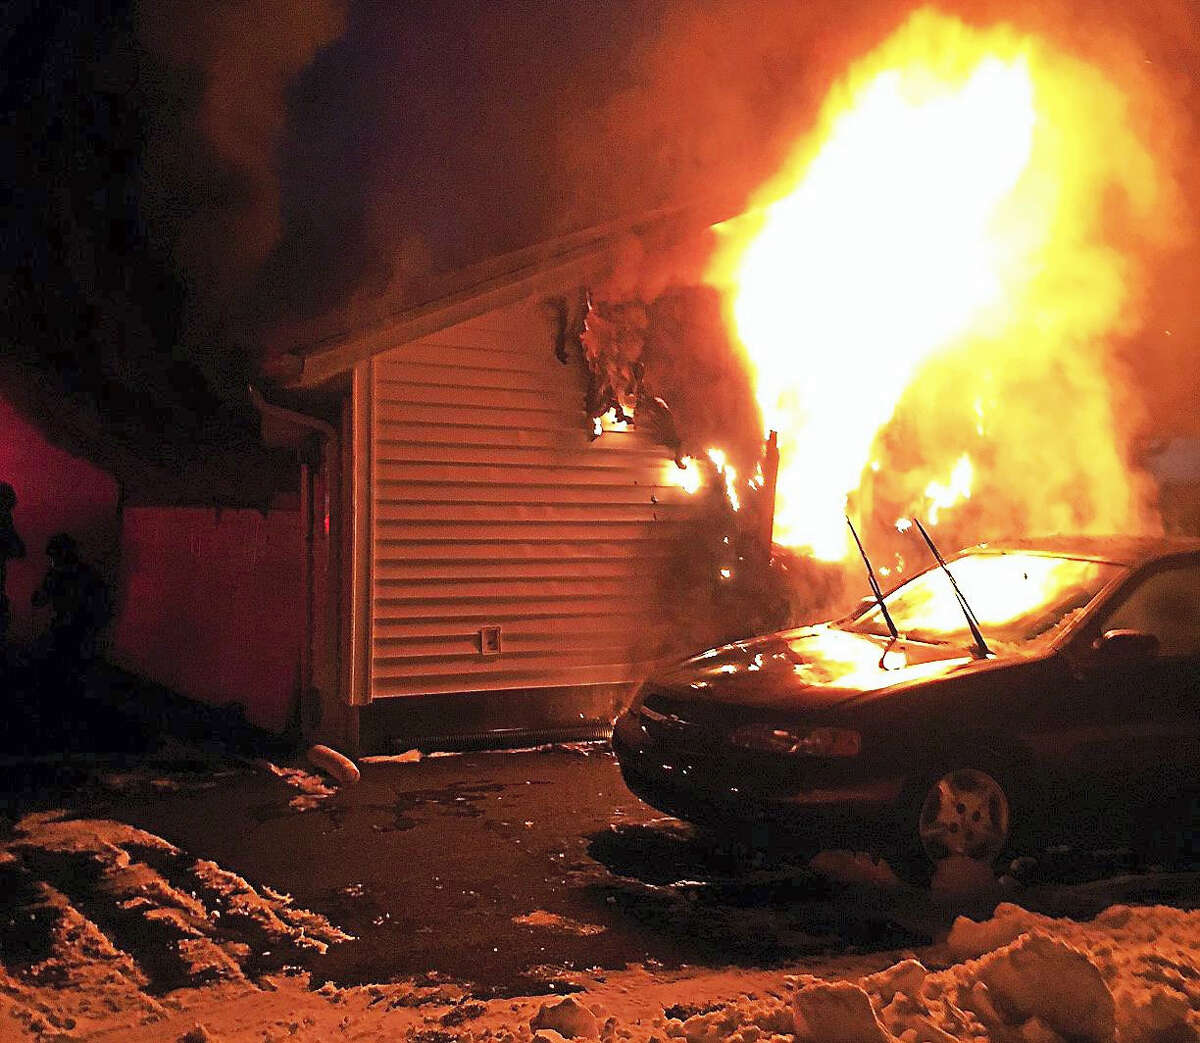 Hamden firefighters battled a garage fire Monday night at 6 Wilson Lane, just off Benham Street. The flames were contained to the garage but the home sustained heat and smoke damage.